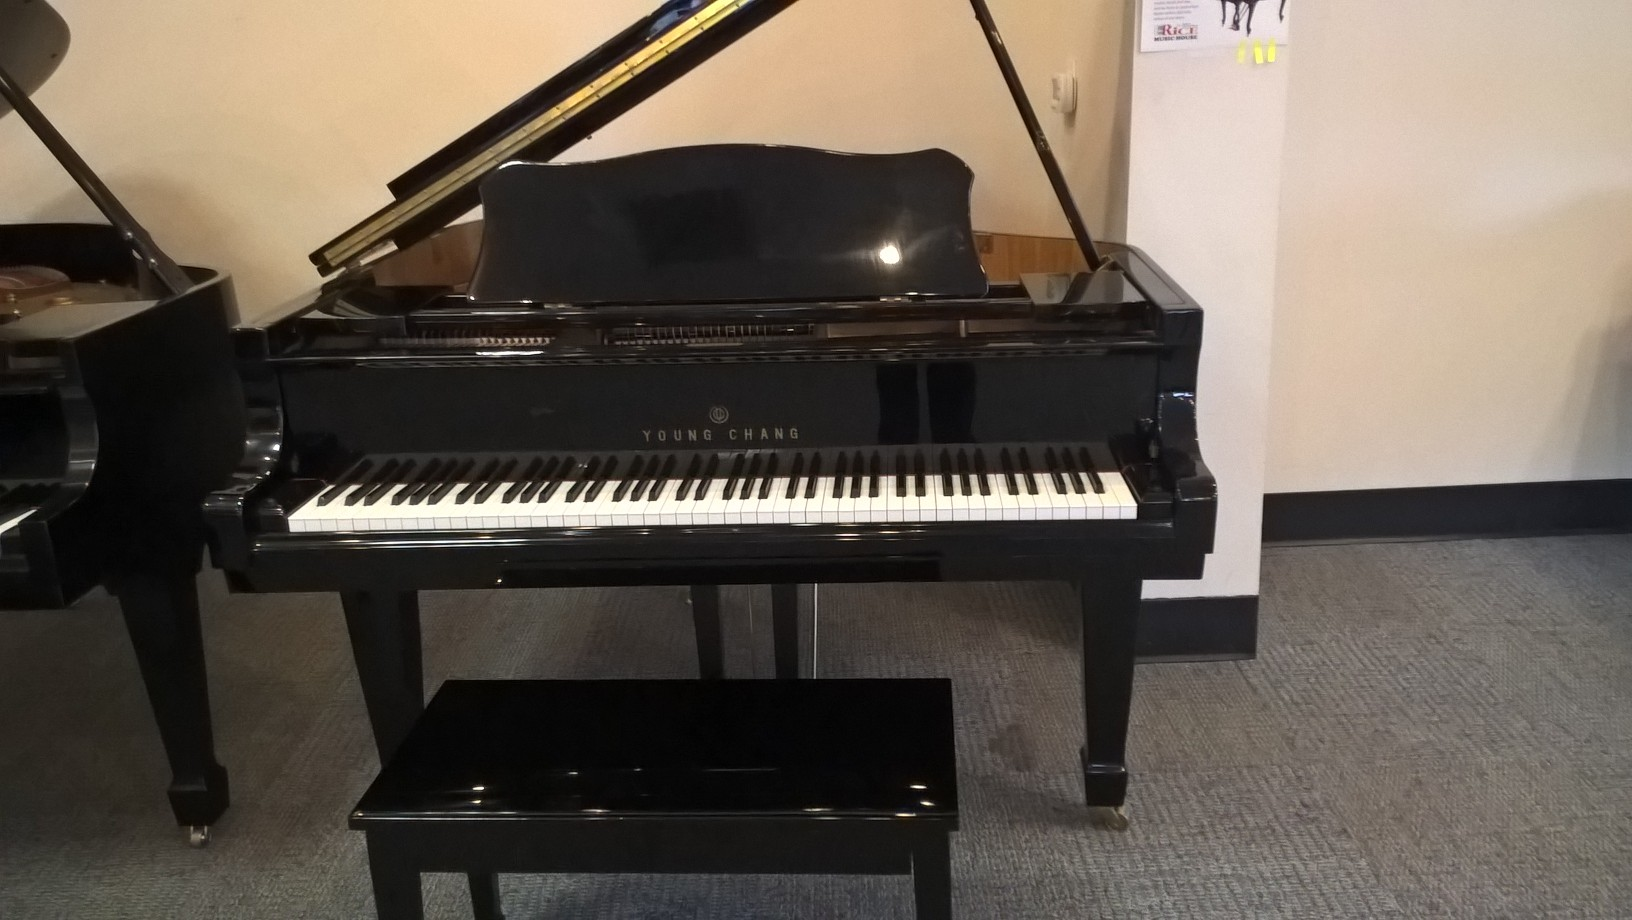 rice music house used young chang baby grand piano. Black Bedroom Furniture Sets. Home Design Ideas